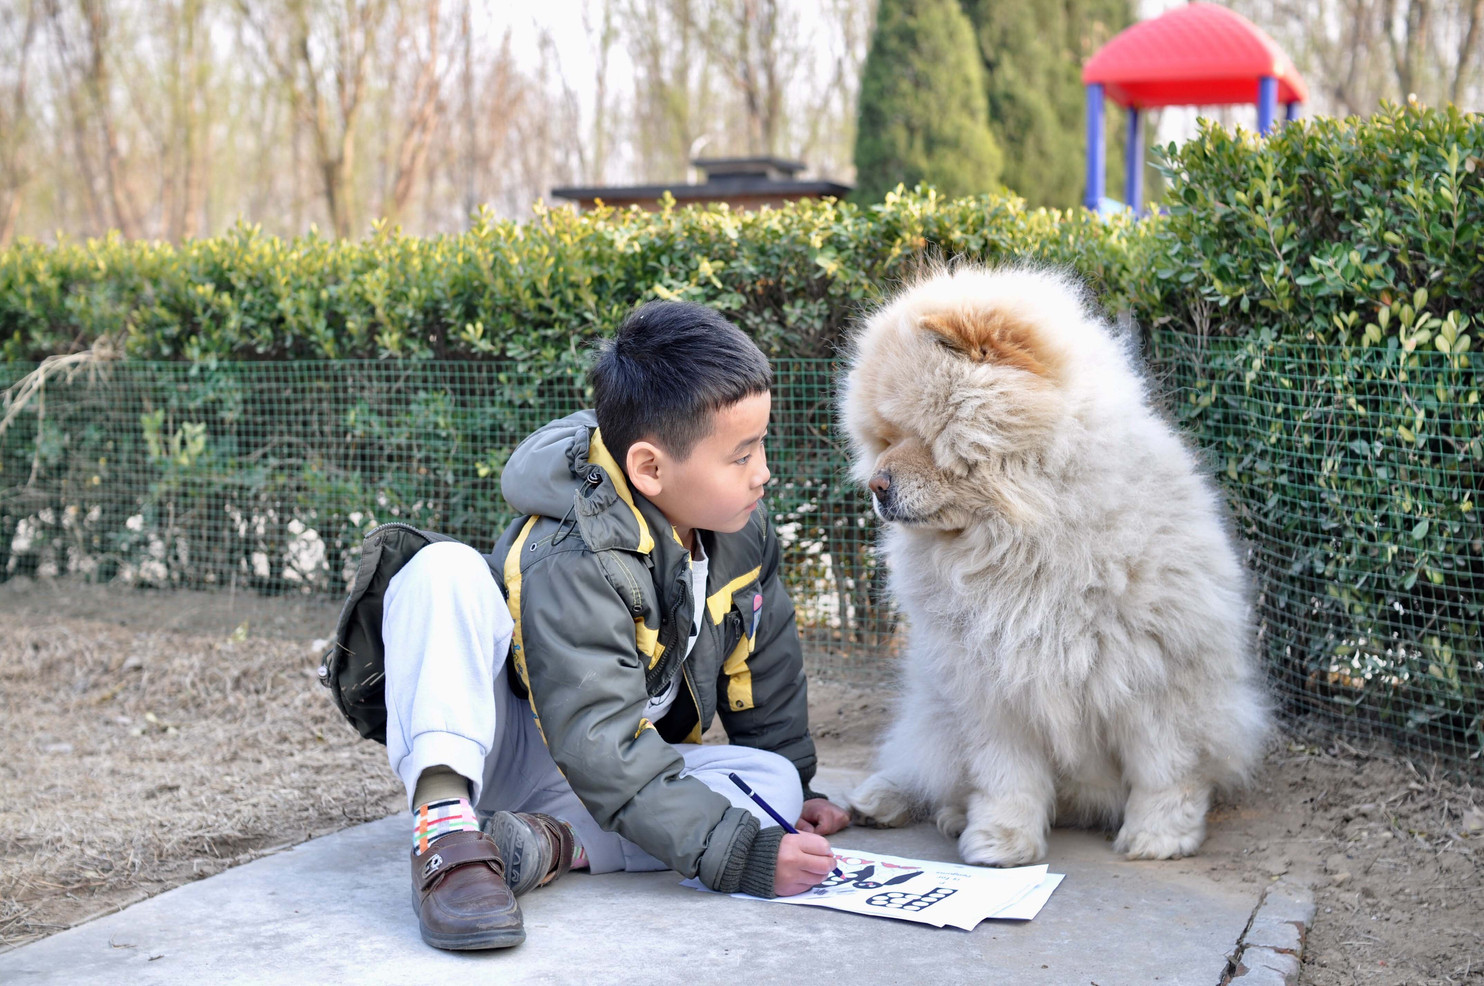 Xiao Dong, an orphan at New Hope Foster Home colors with Xiao Xiong the foster home's dog. During Xiao Dong's daily tutoring lessons, class was outside if he behaved.